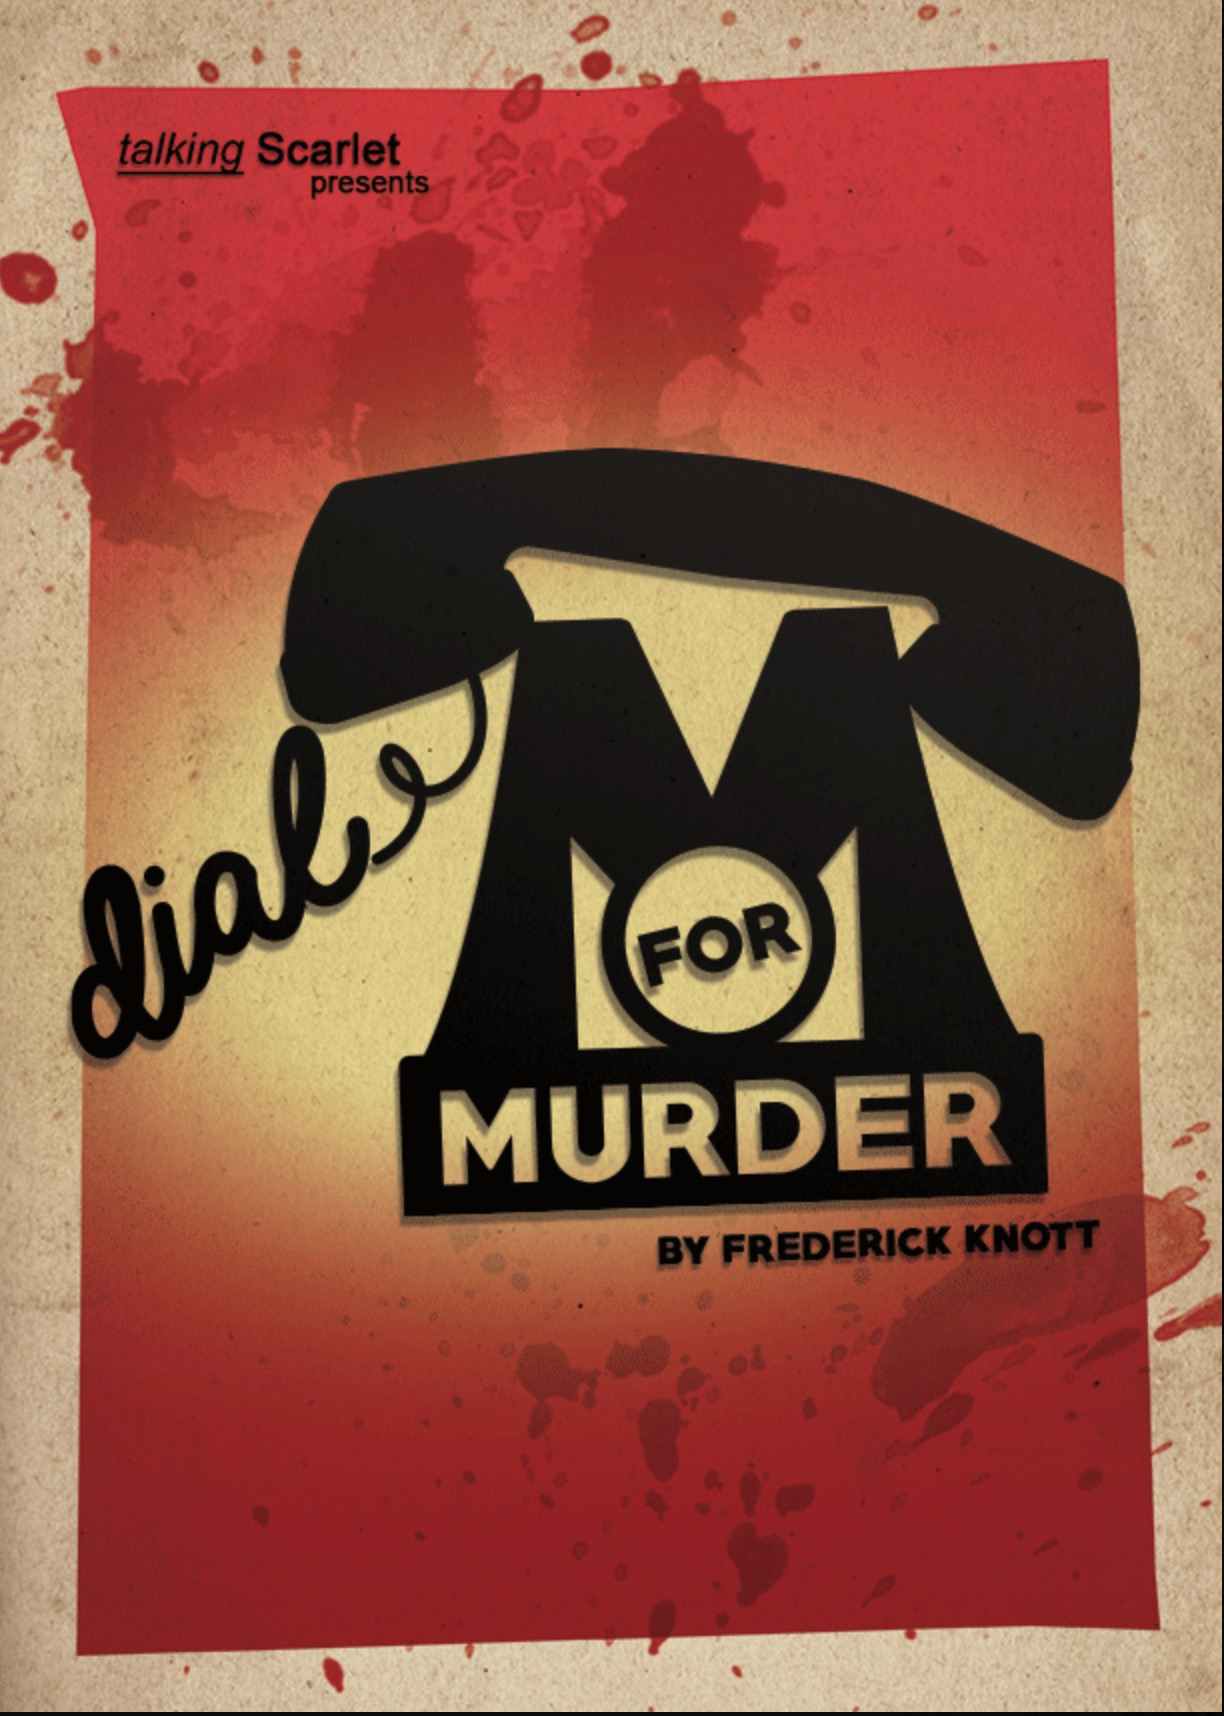 TERRI HAS JUST BEEN CAST IN THE FANTASTIC PLAY DIAL 'M' FOR MURDER